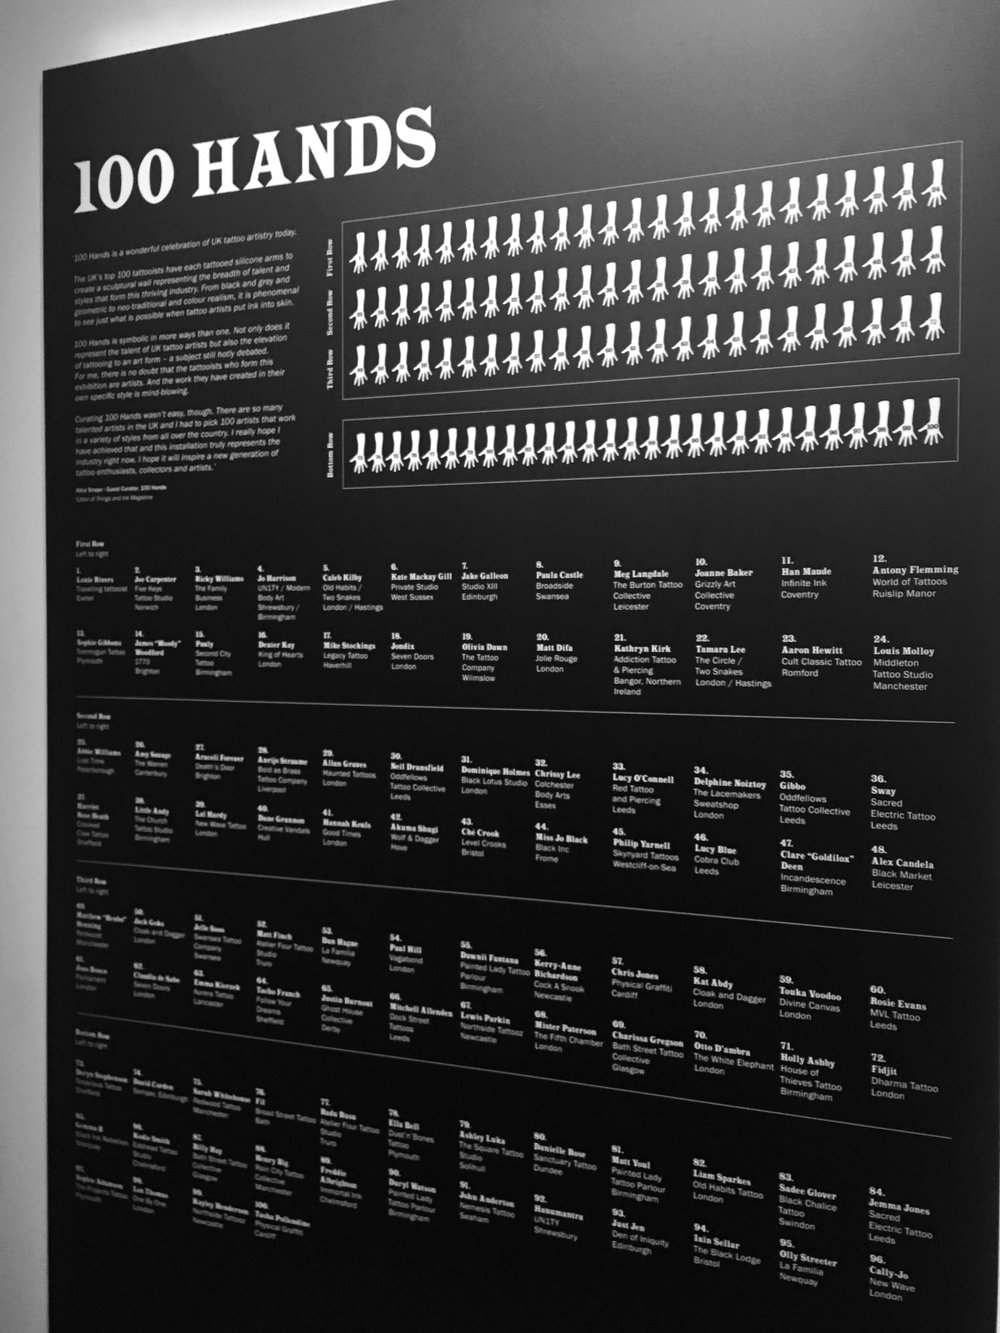 100 Hands Contributing Artists